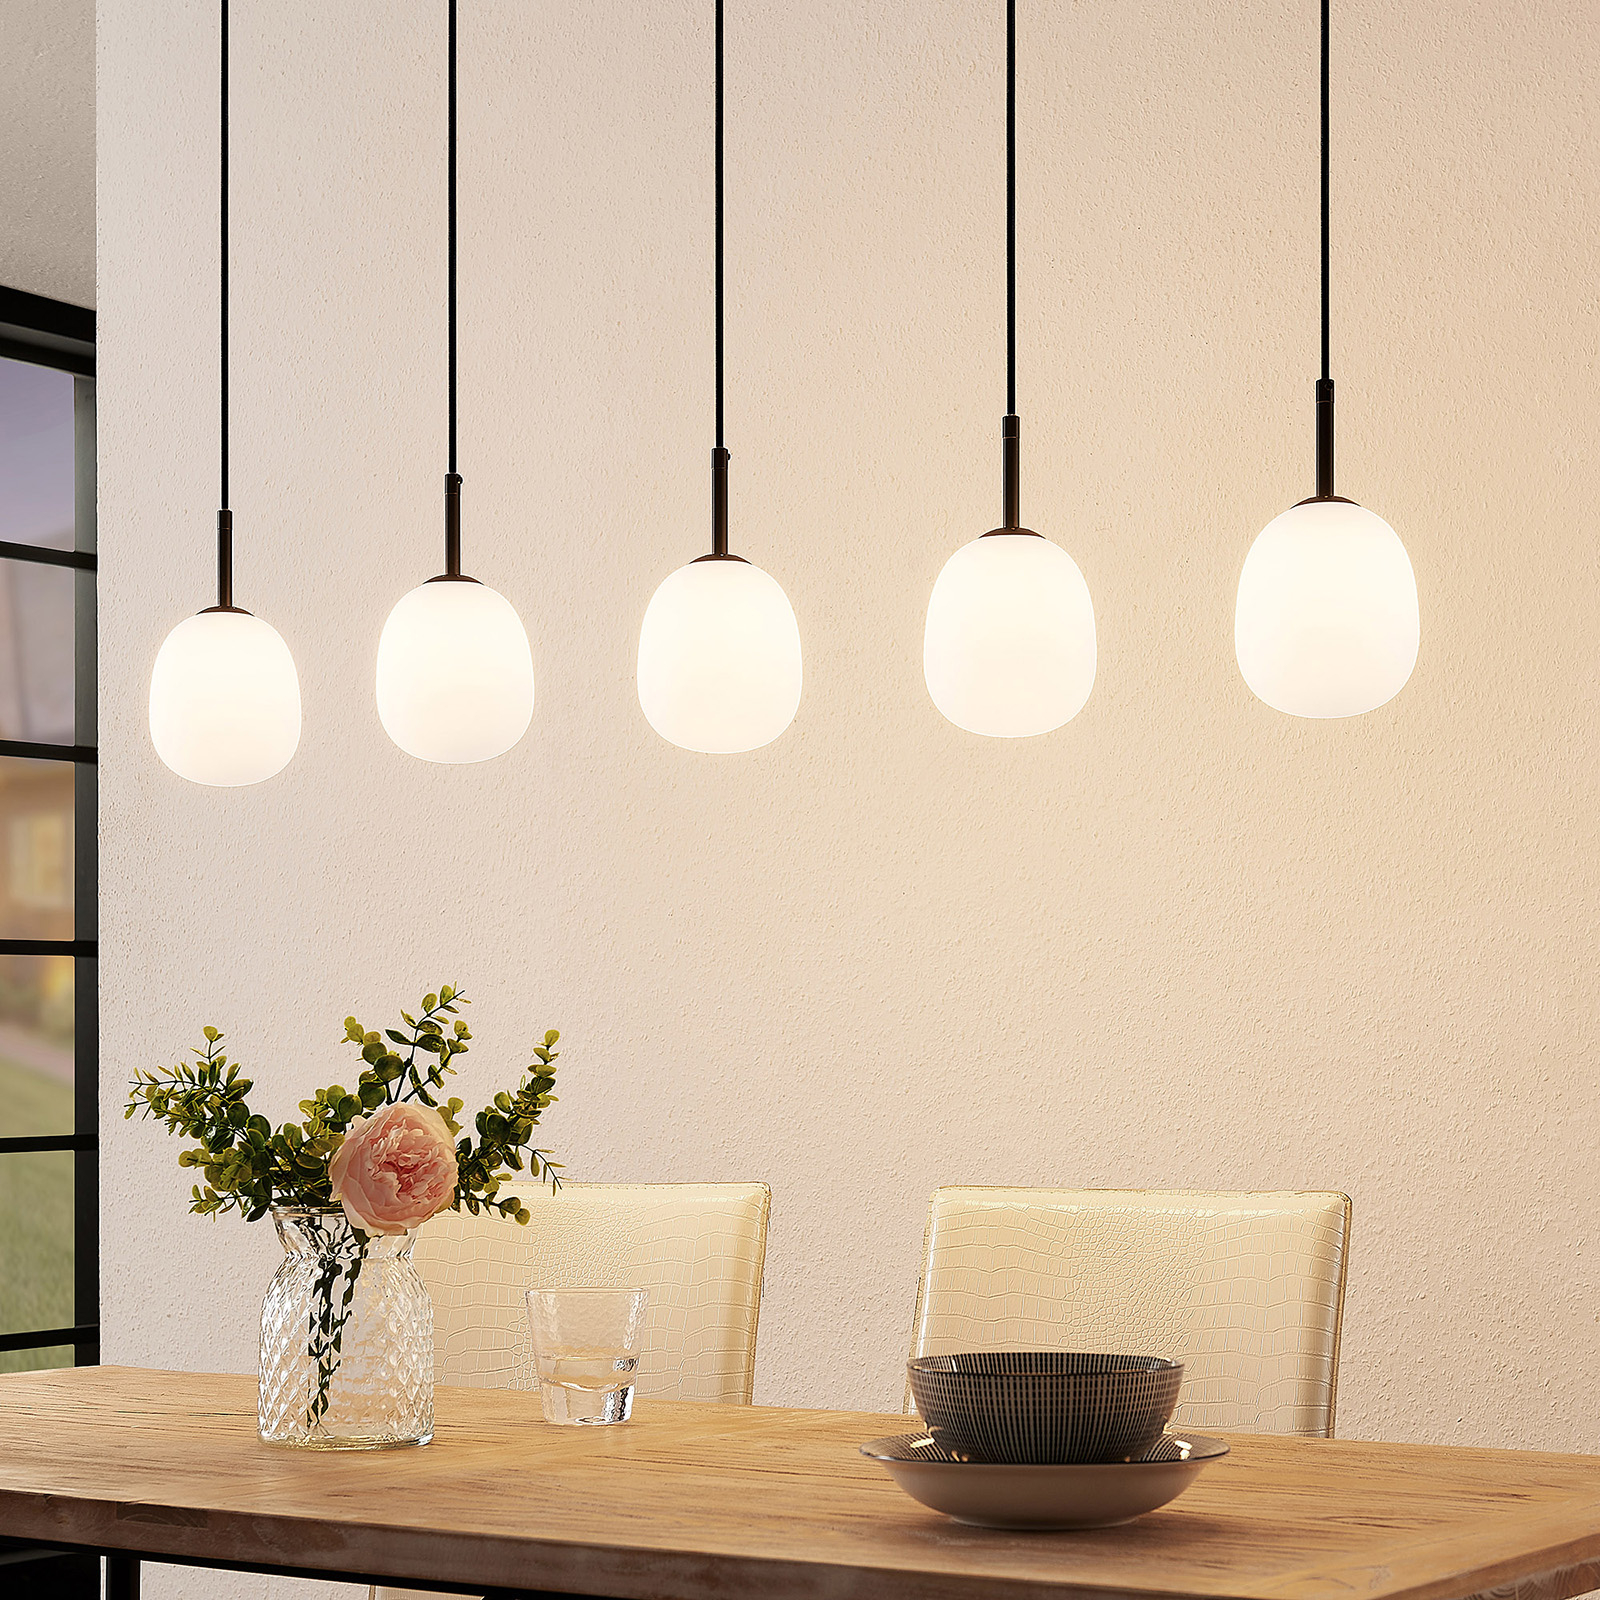 Lindby Etiena hanglamp, 5-lamps, glas opaal